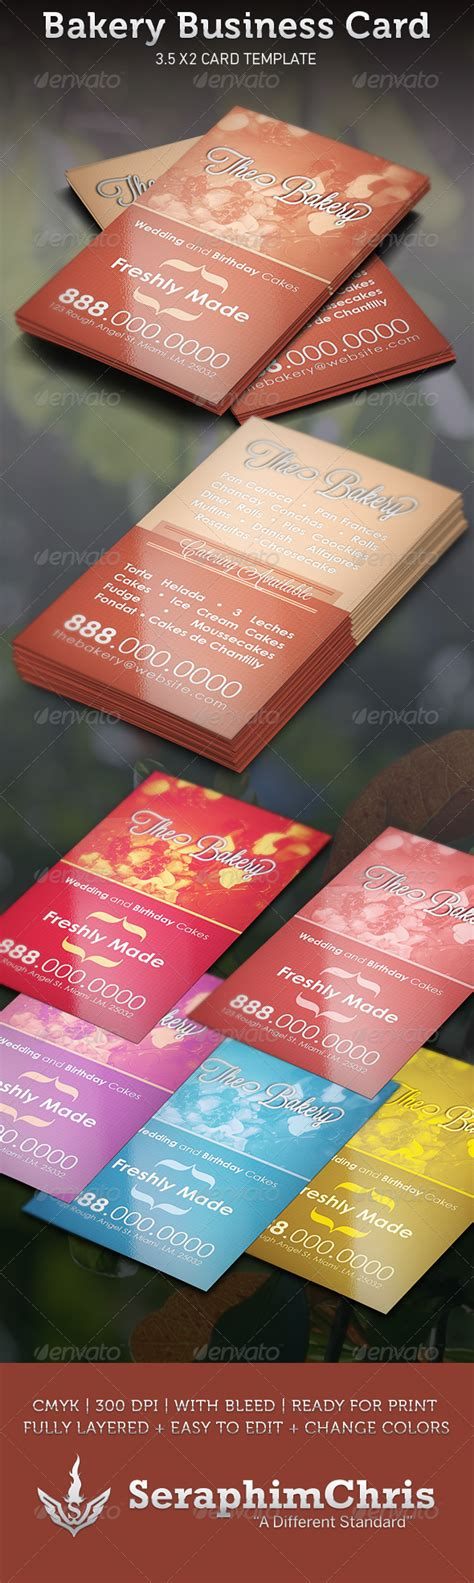 bakery business card template bakery flyer 187 tinkytyler org stock photos graphics